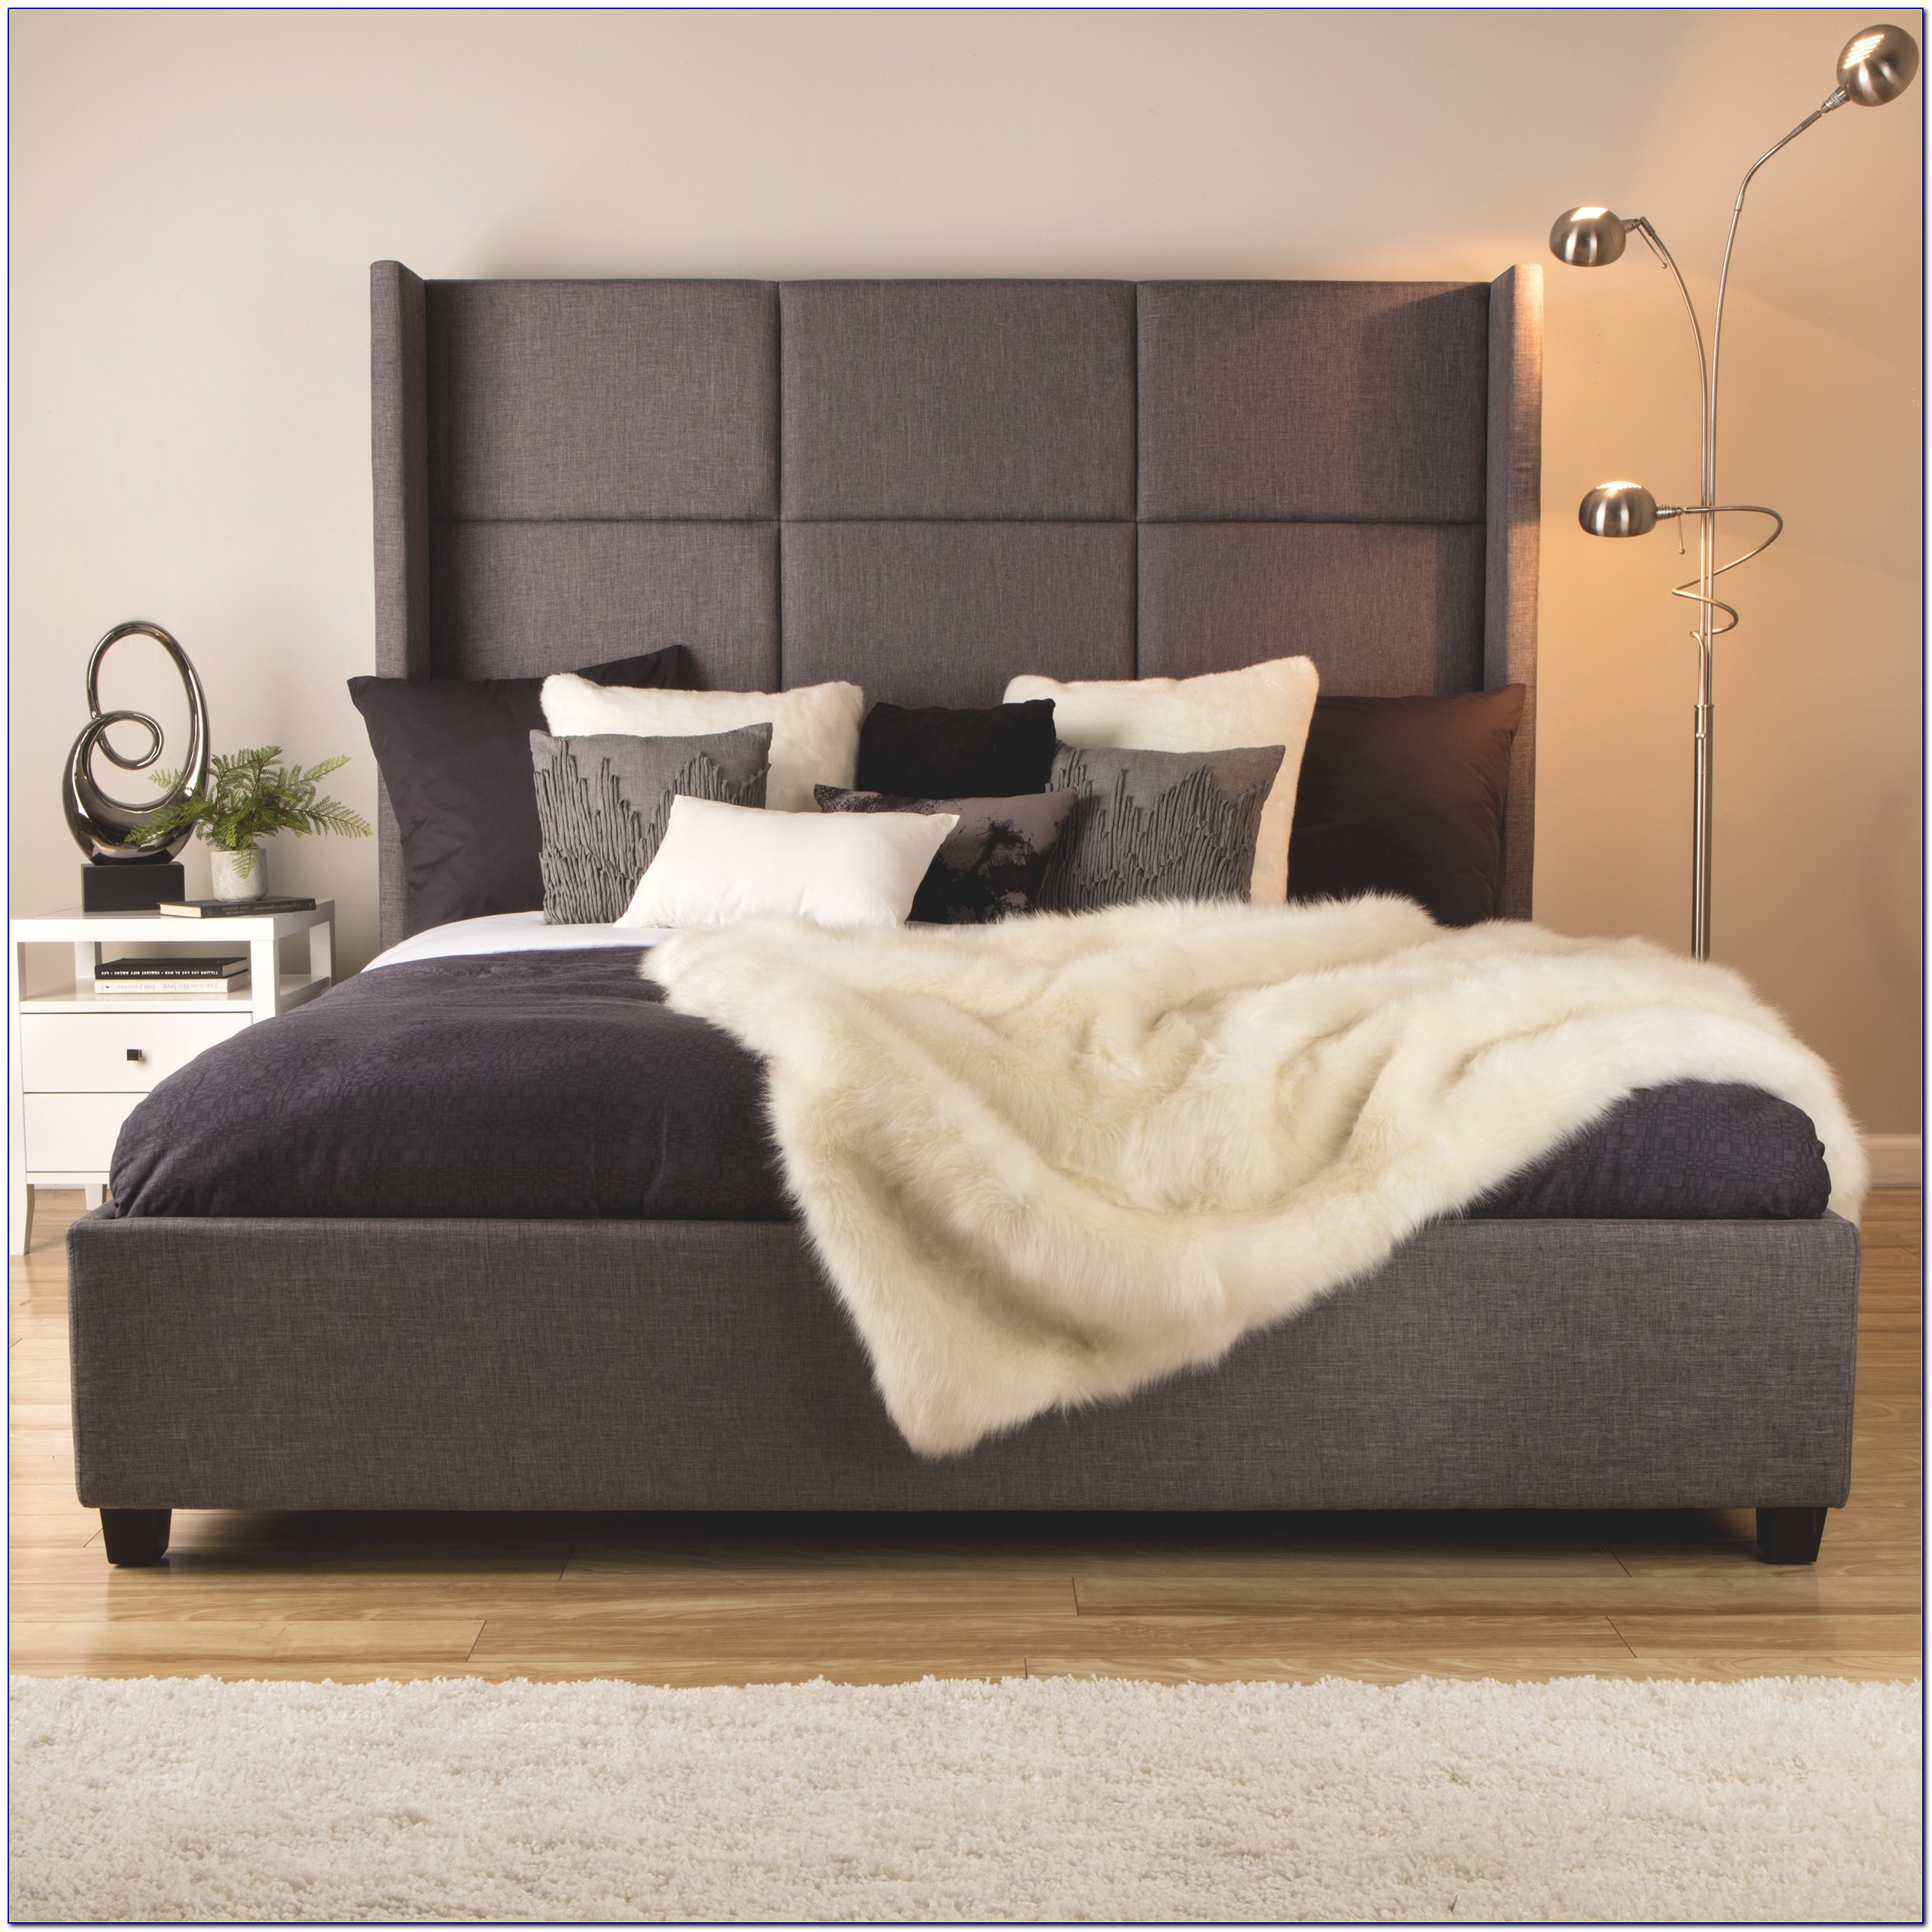 Bed Headboards Super King Size